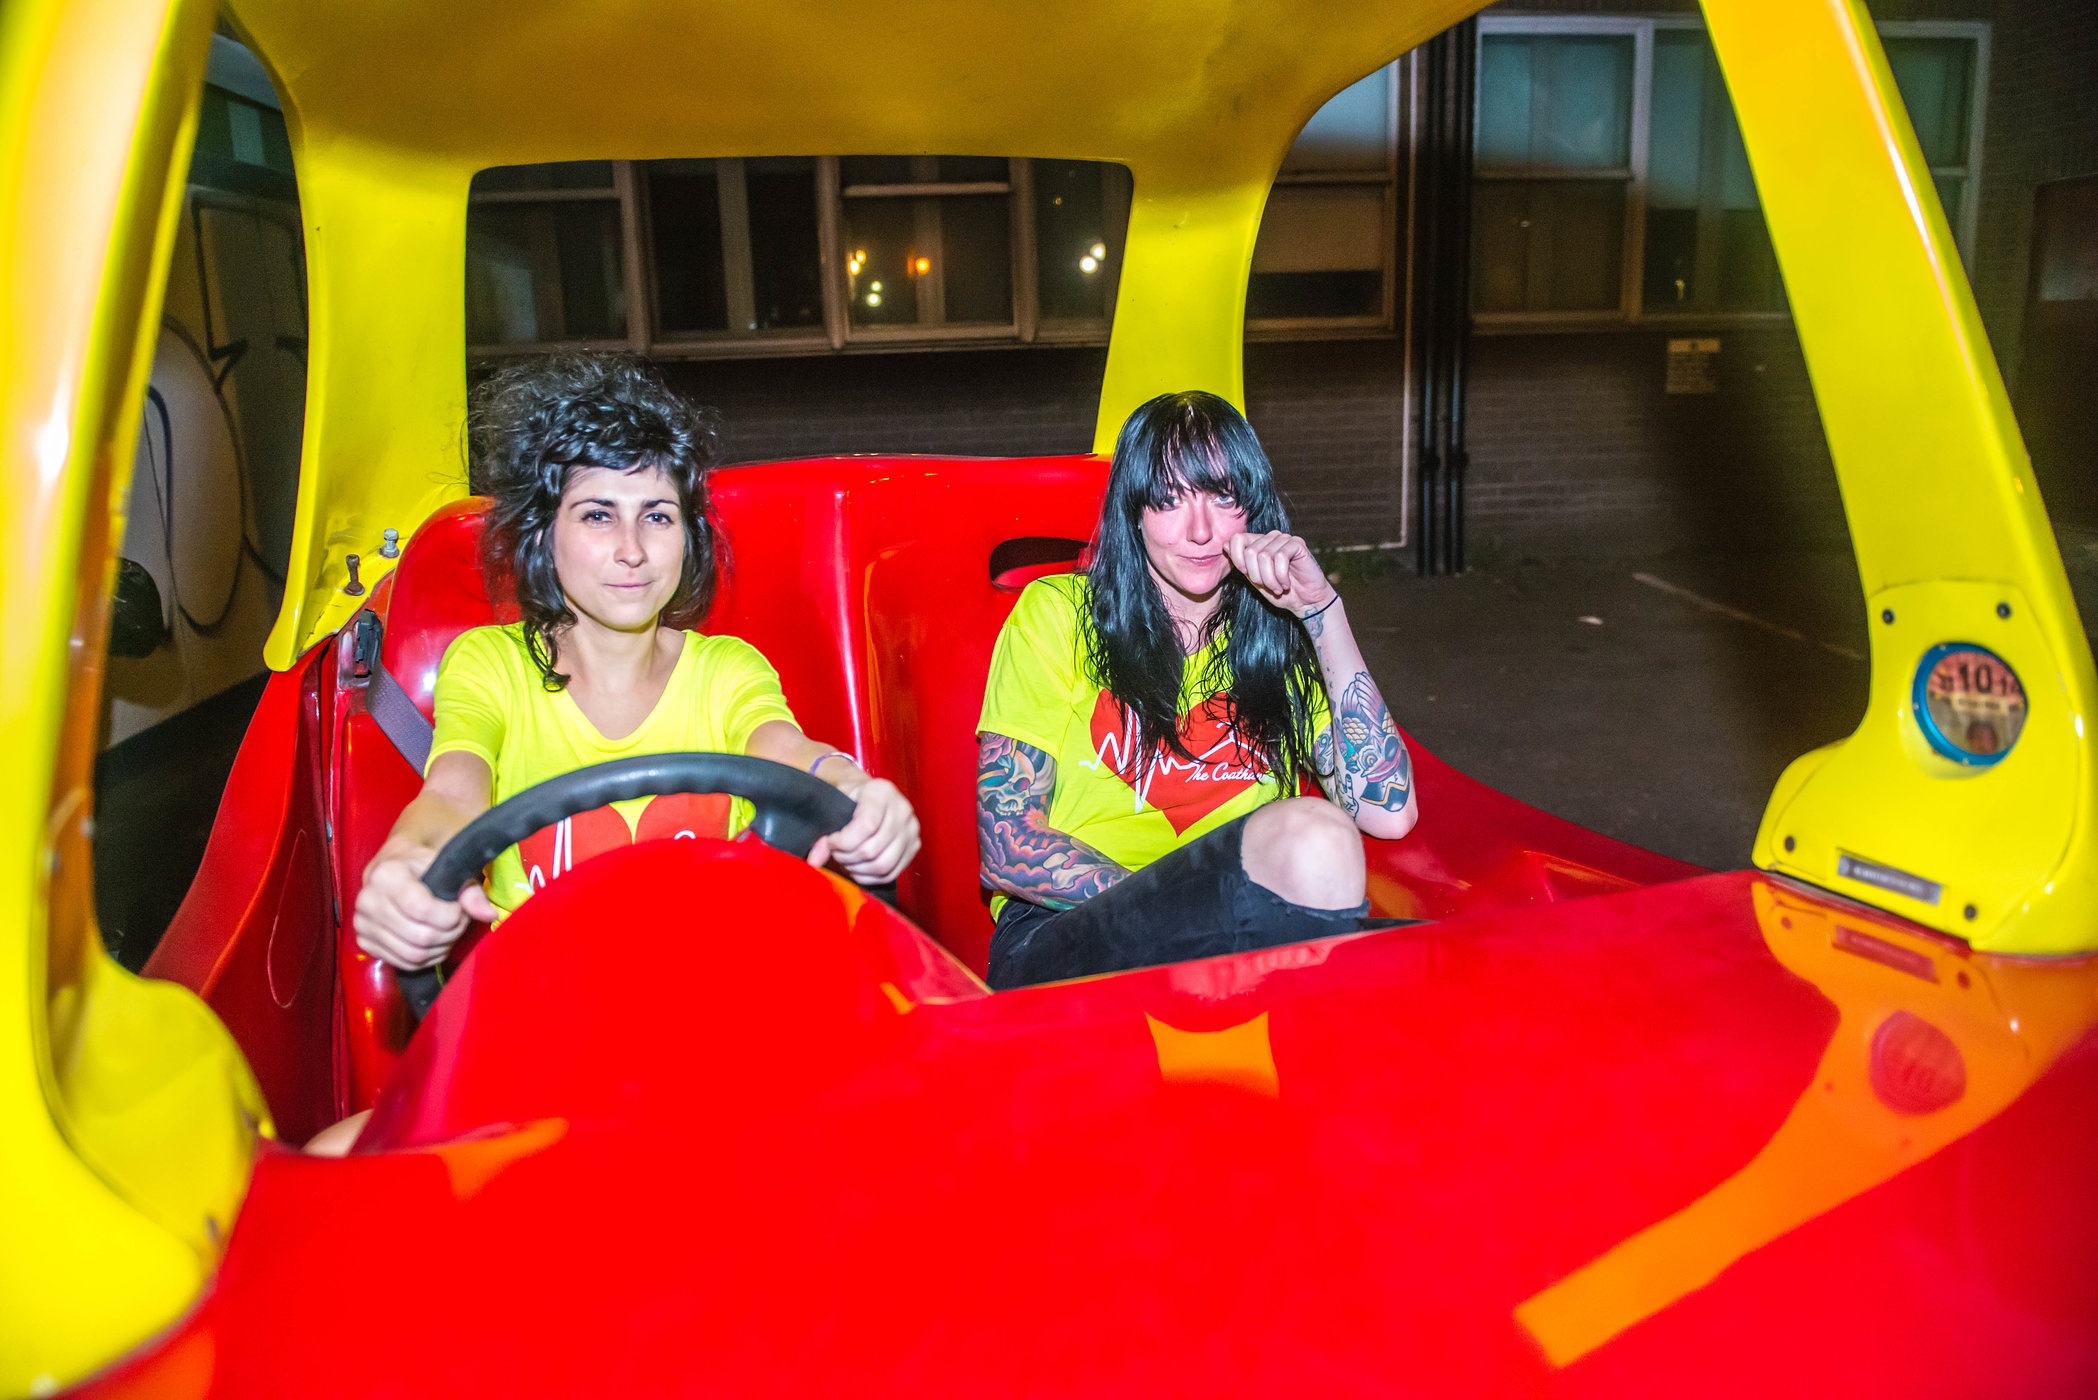 The Coathangers, May 2016